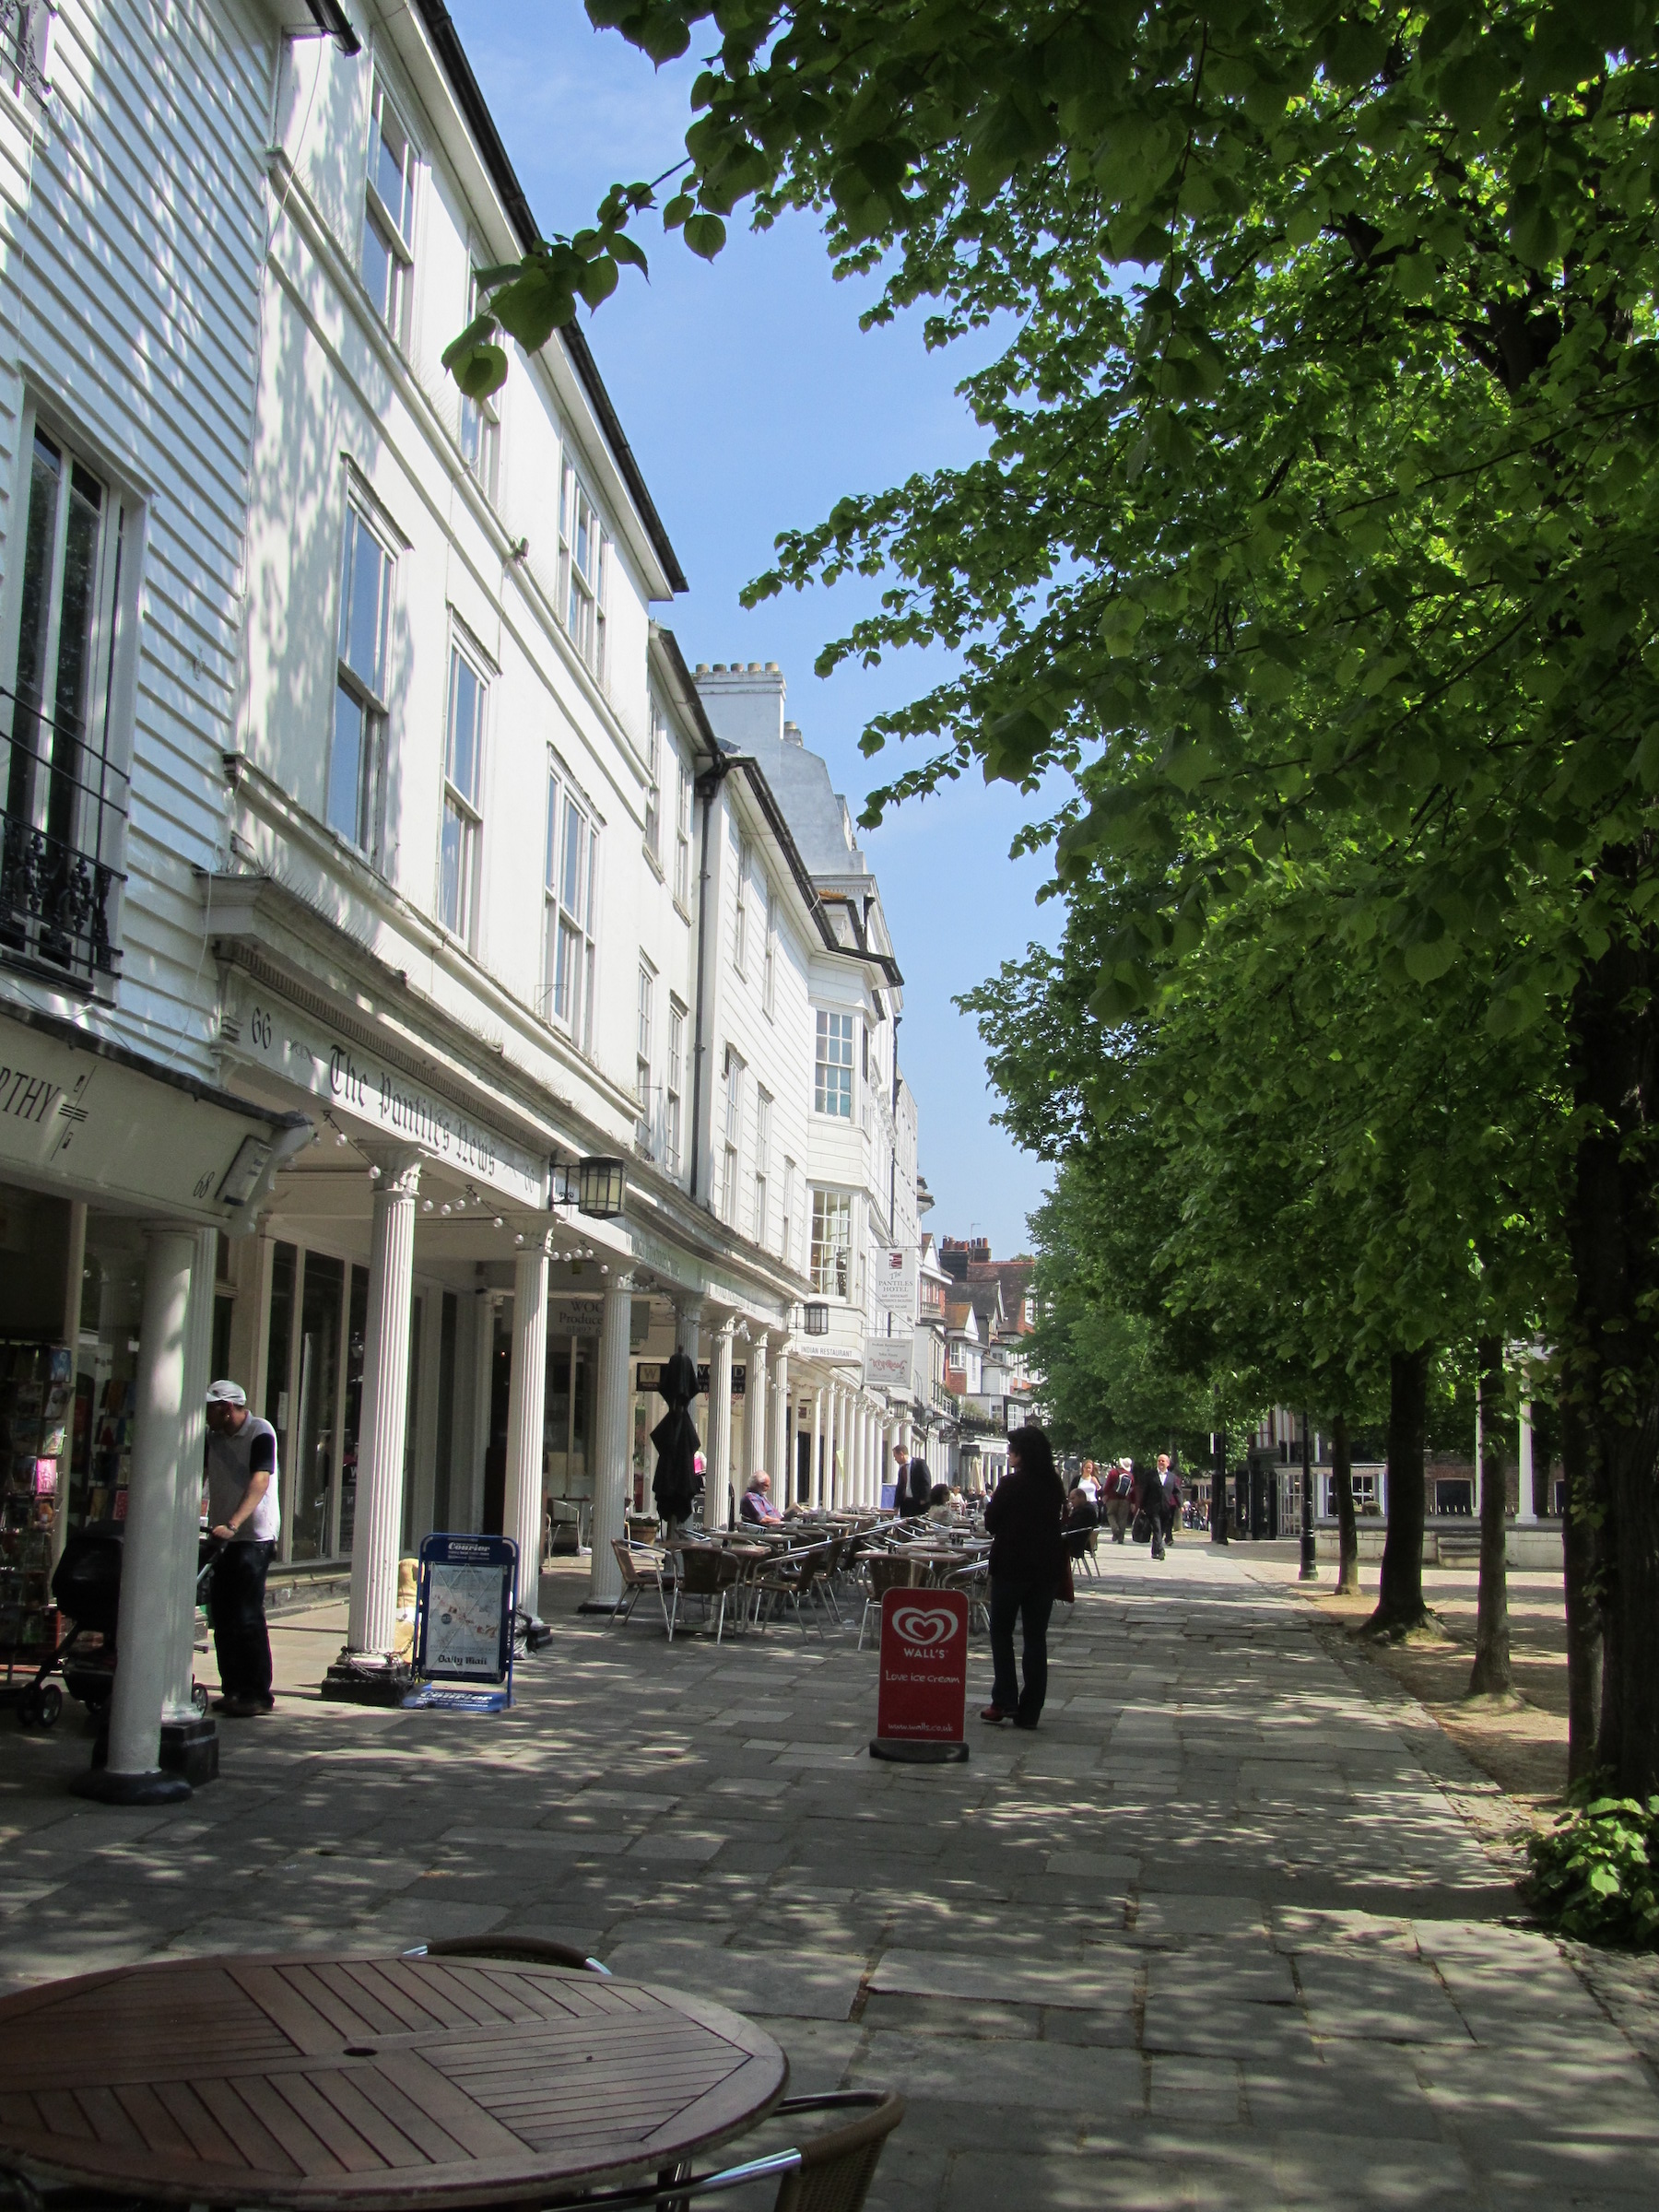 Tunbridge Wells, Kent